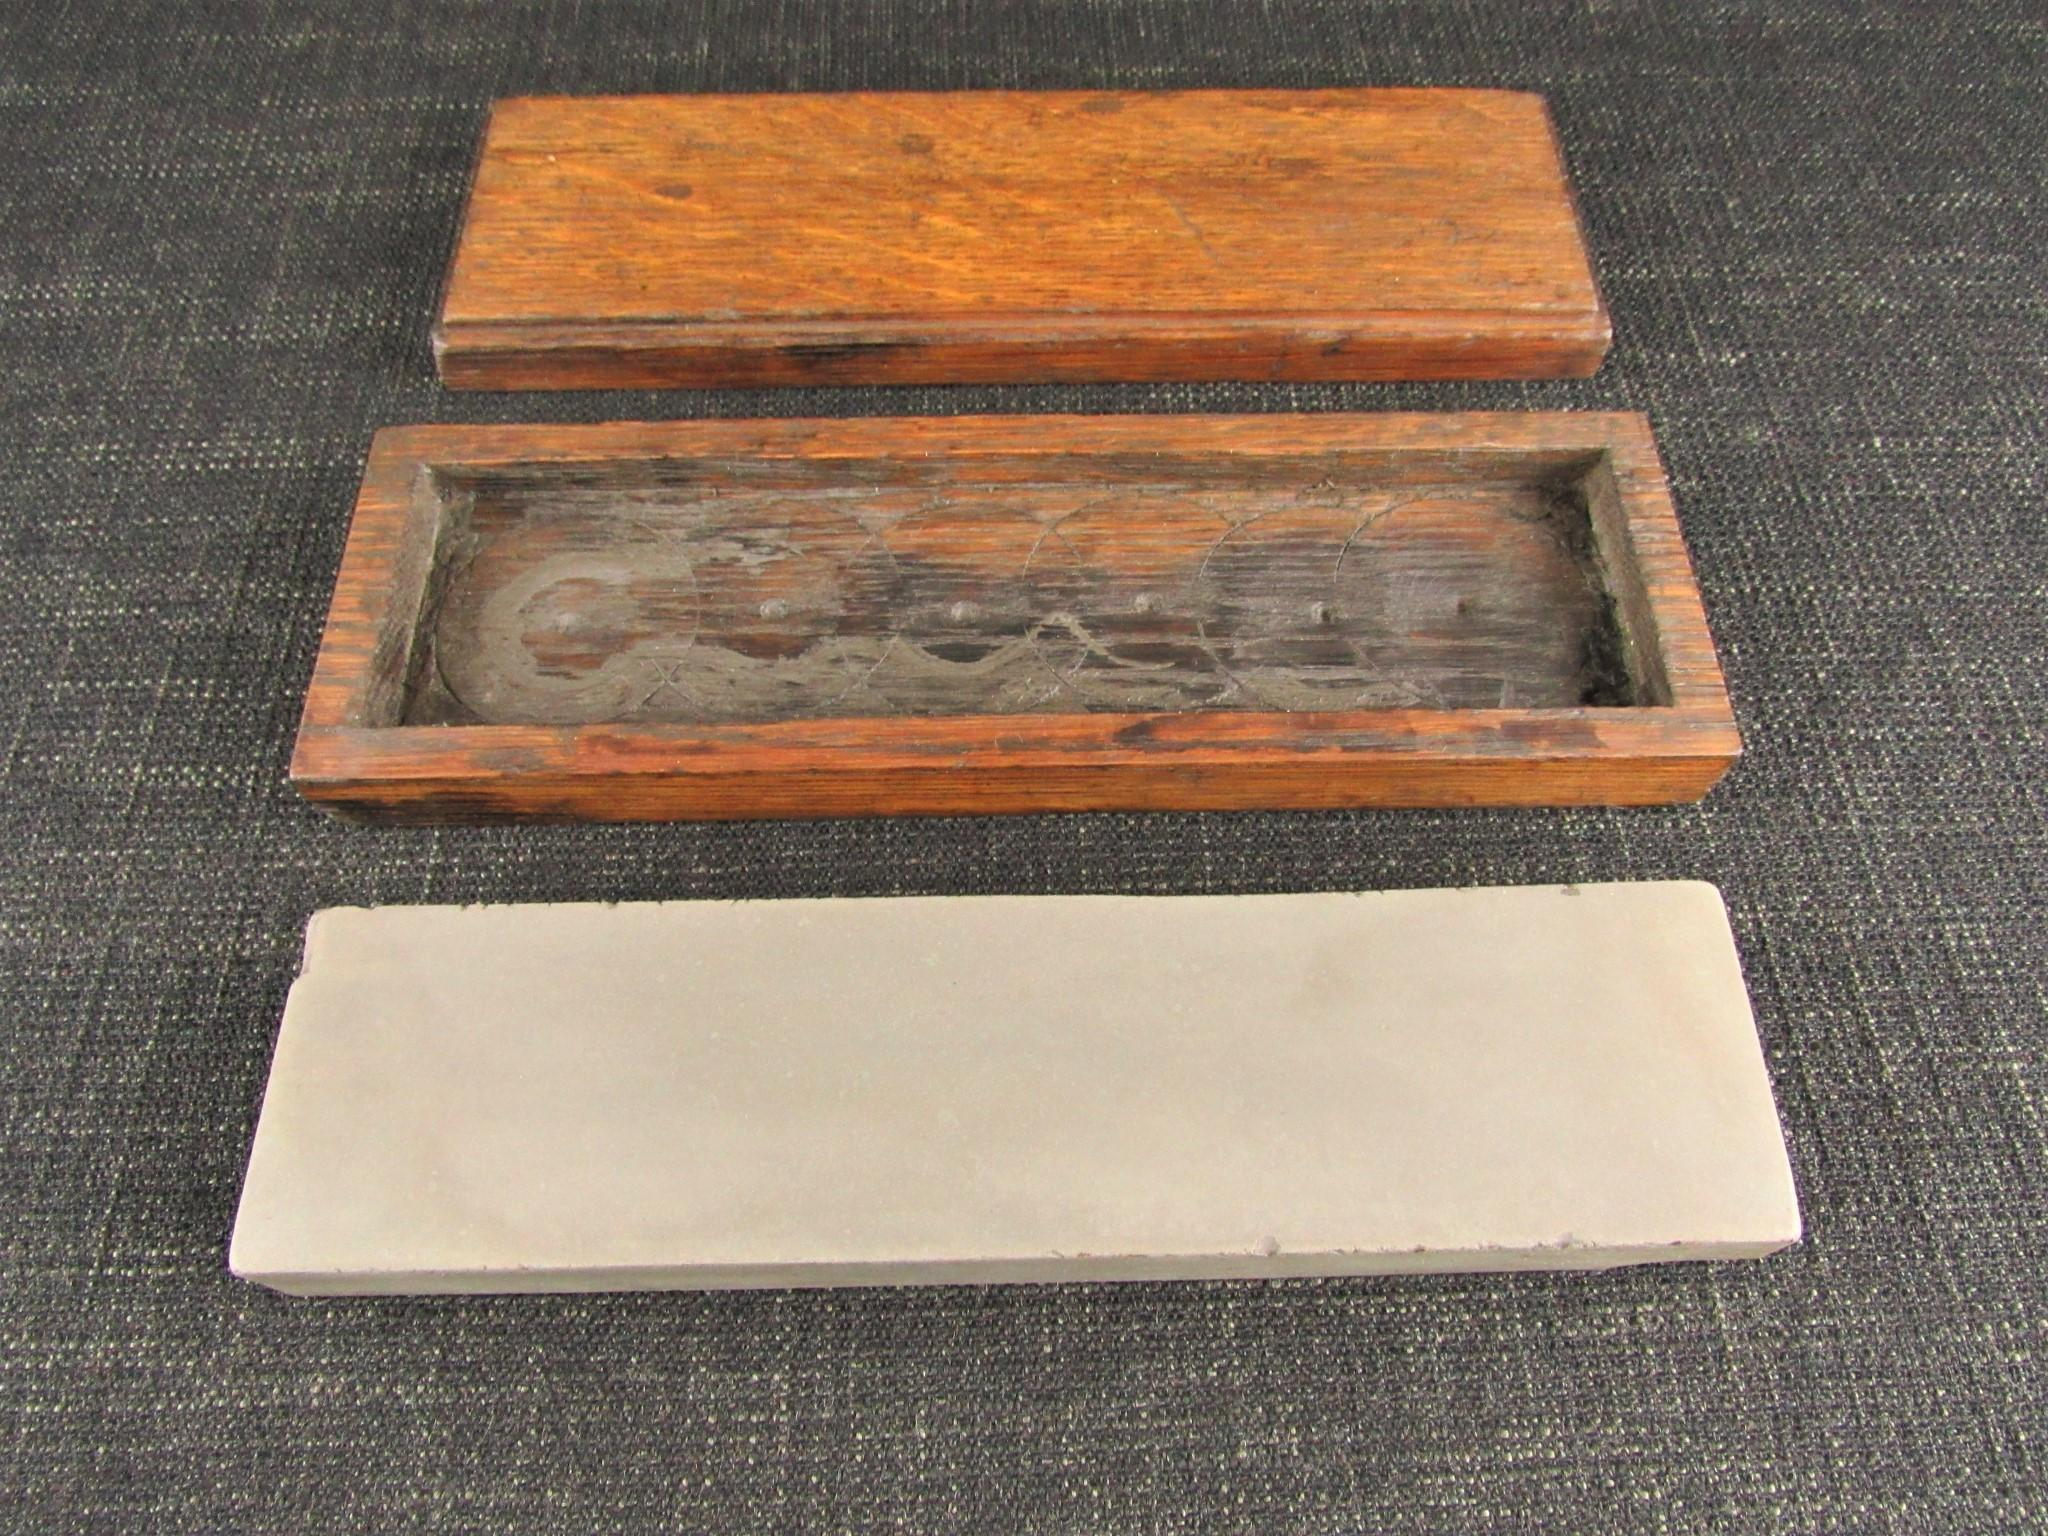 Unidentified Natural Oilstone Sharpening Stone